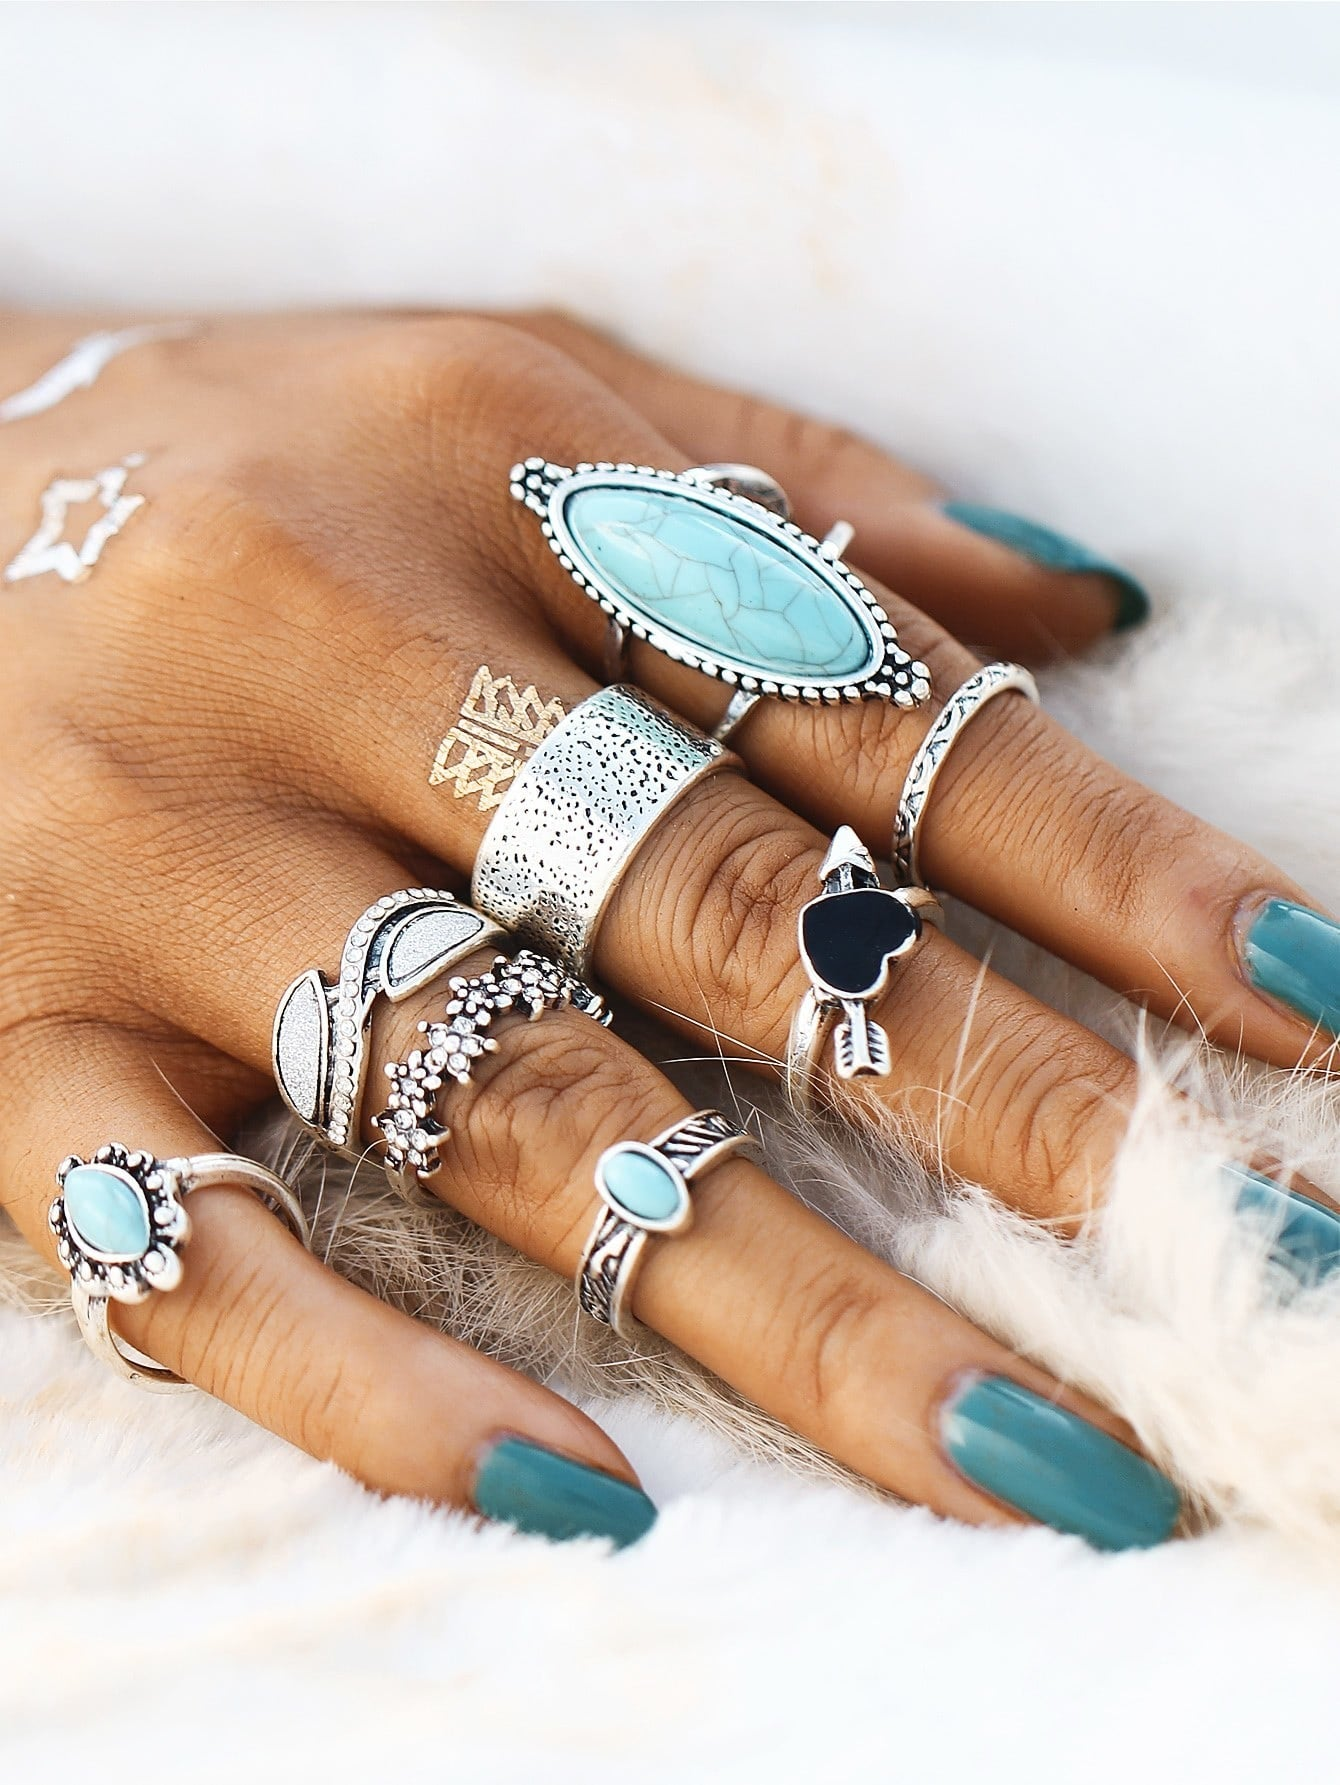 Heart & Flower Design Ring Set With Turquoise 8pcs - Slangz TeeZ